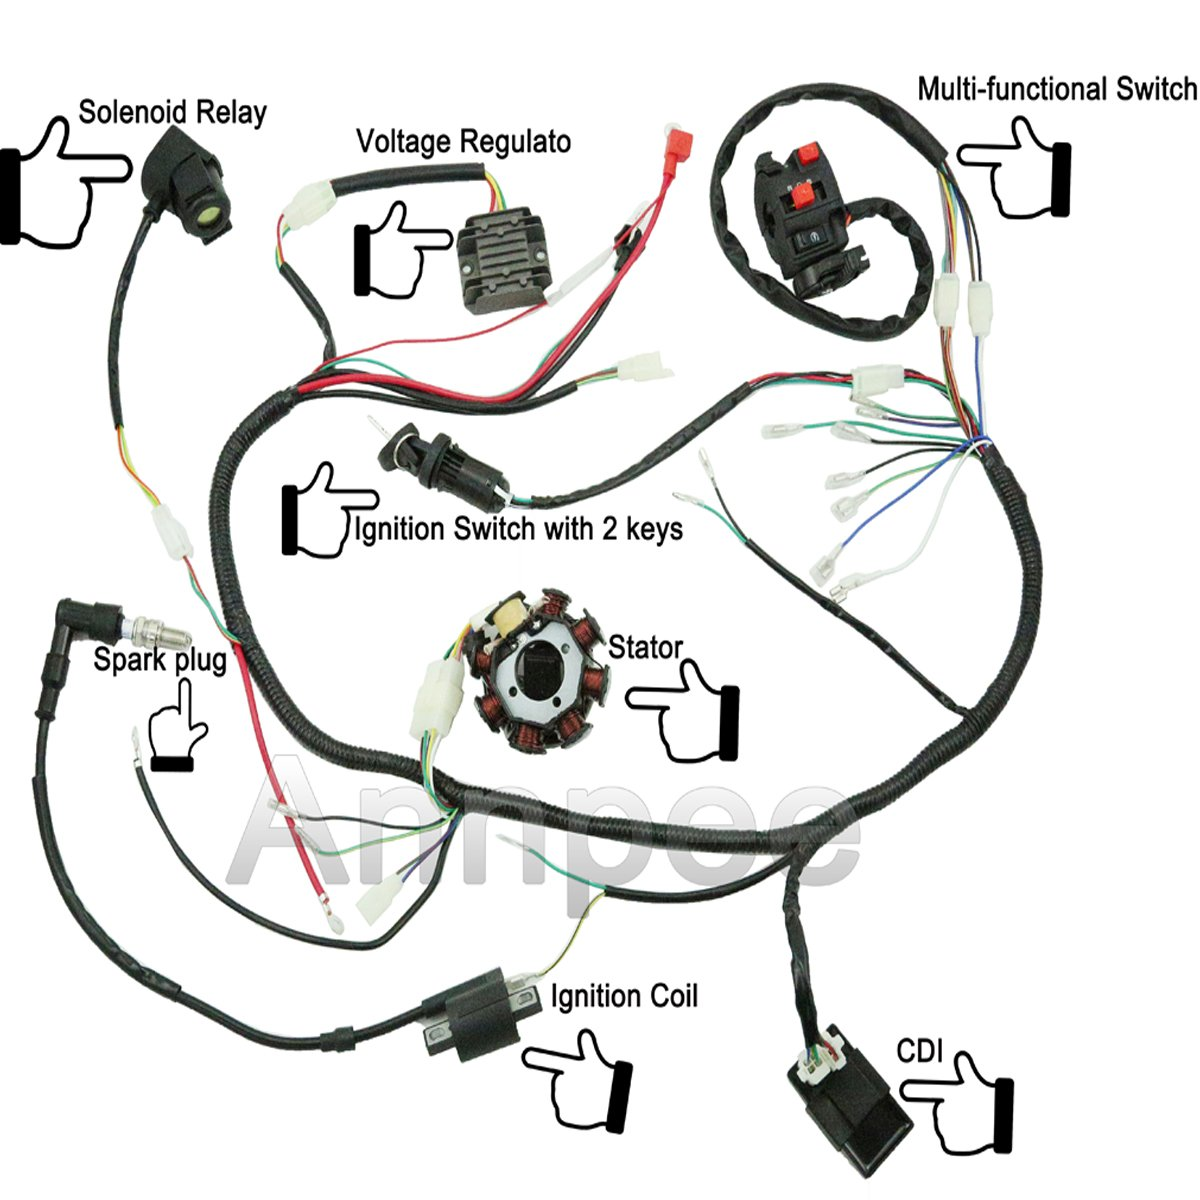 Jikan Annpee Complete Wiring Harness Kit Wire Loom 4 Regulator Diagram For Scooter Electrics Stator Coil Cdi Atv Quad Four Wheelers 150cc 200cc 250cc Go Kart Dirt Pit